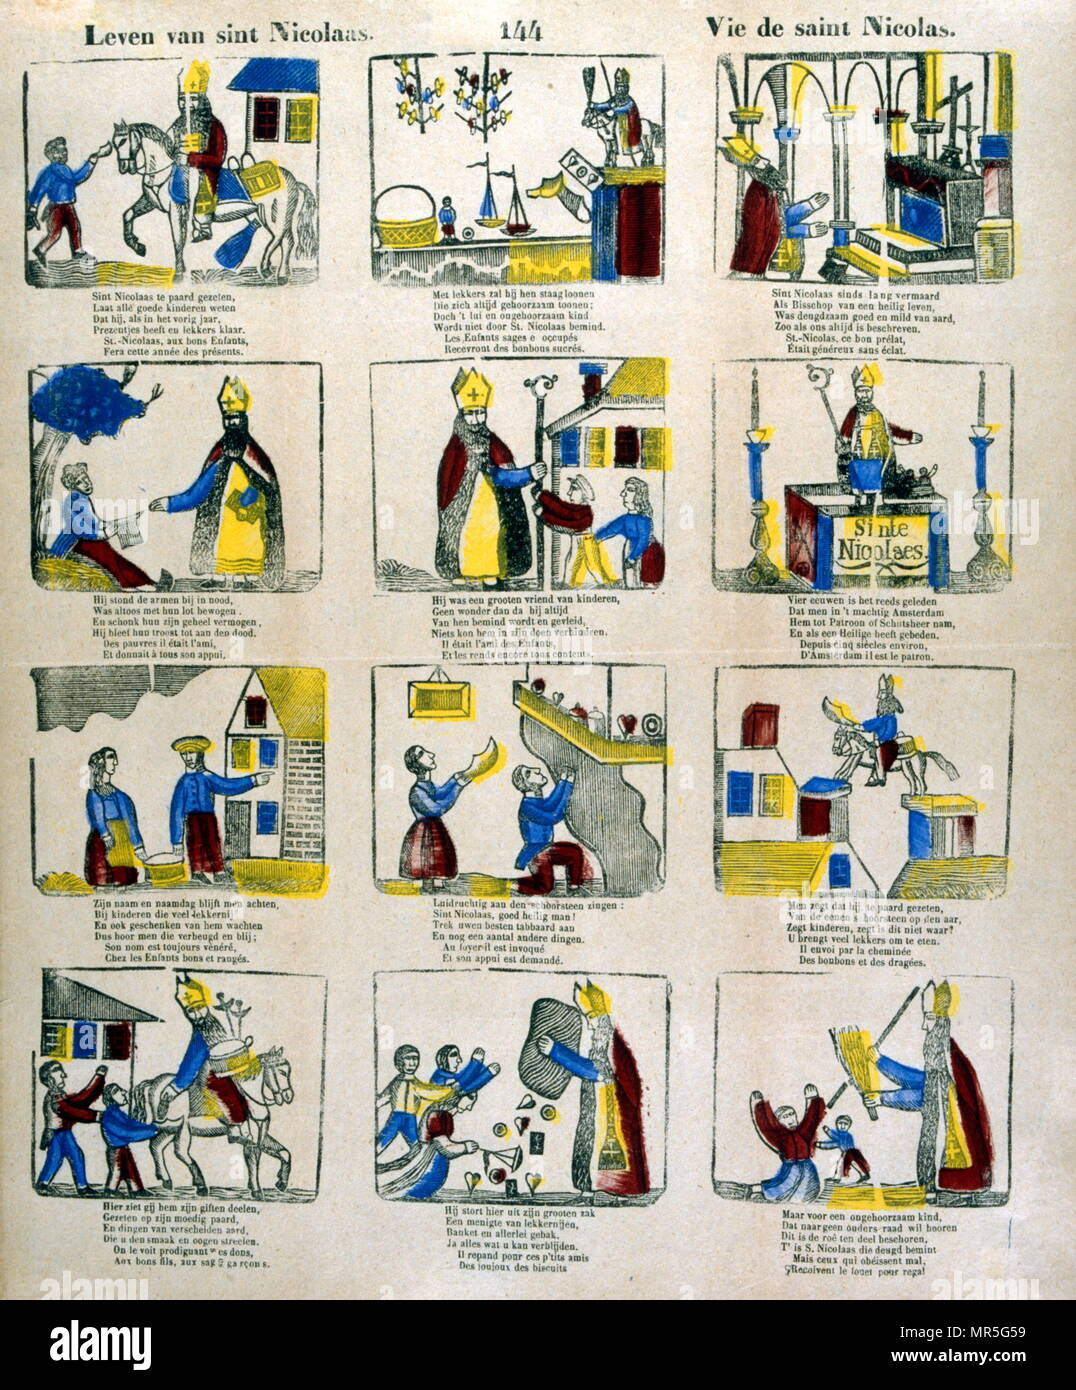 image regarding St Nicholas Prayer Printable titled French 19th century examples depicting the lifetime and